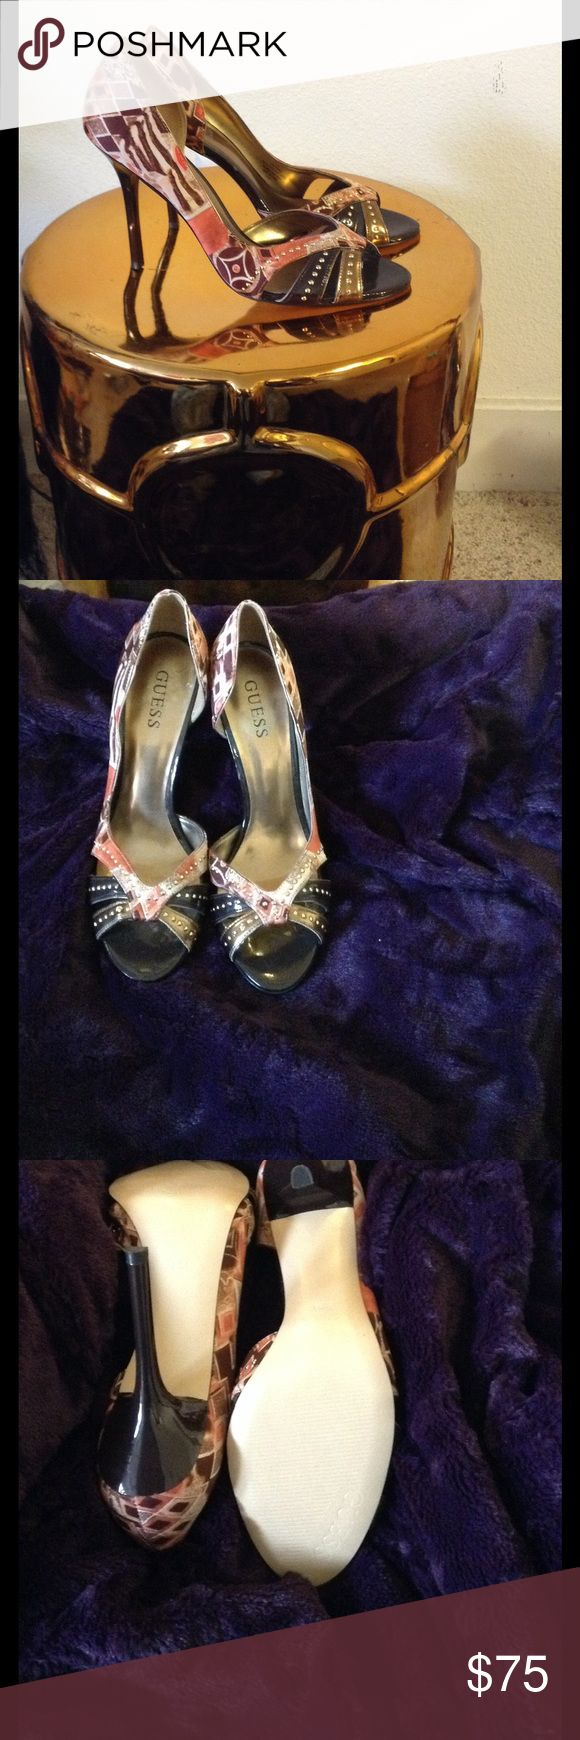 Guess patterned pumps Earthy-toned brown and bronze peep toe pump w/ patent leather and studded accents! Dress up or down! NEVER BEEN WORN! Guess Shoes Heels